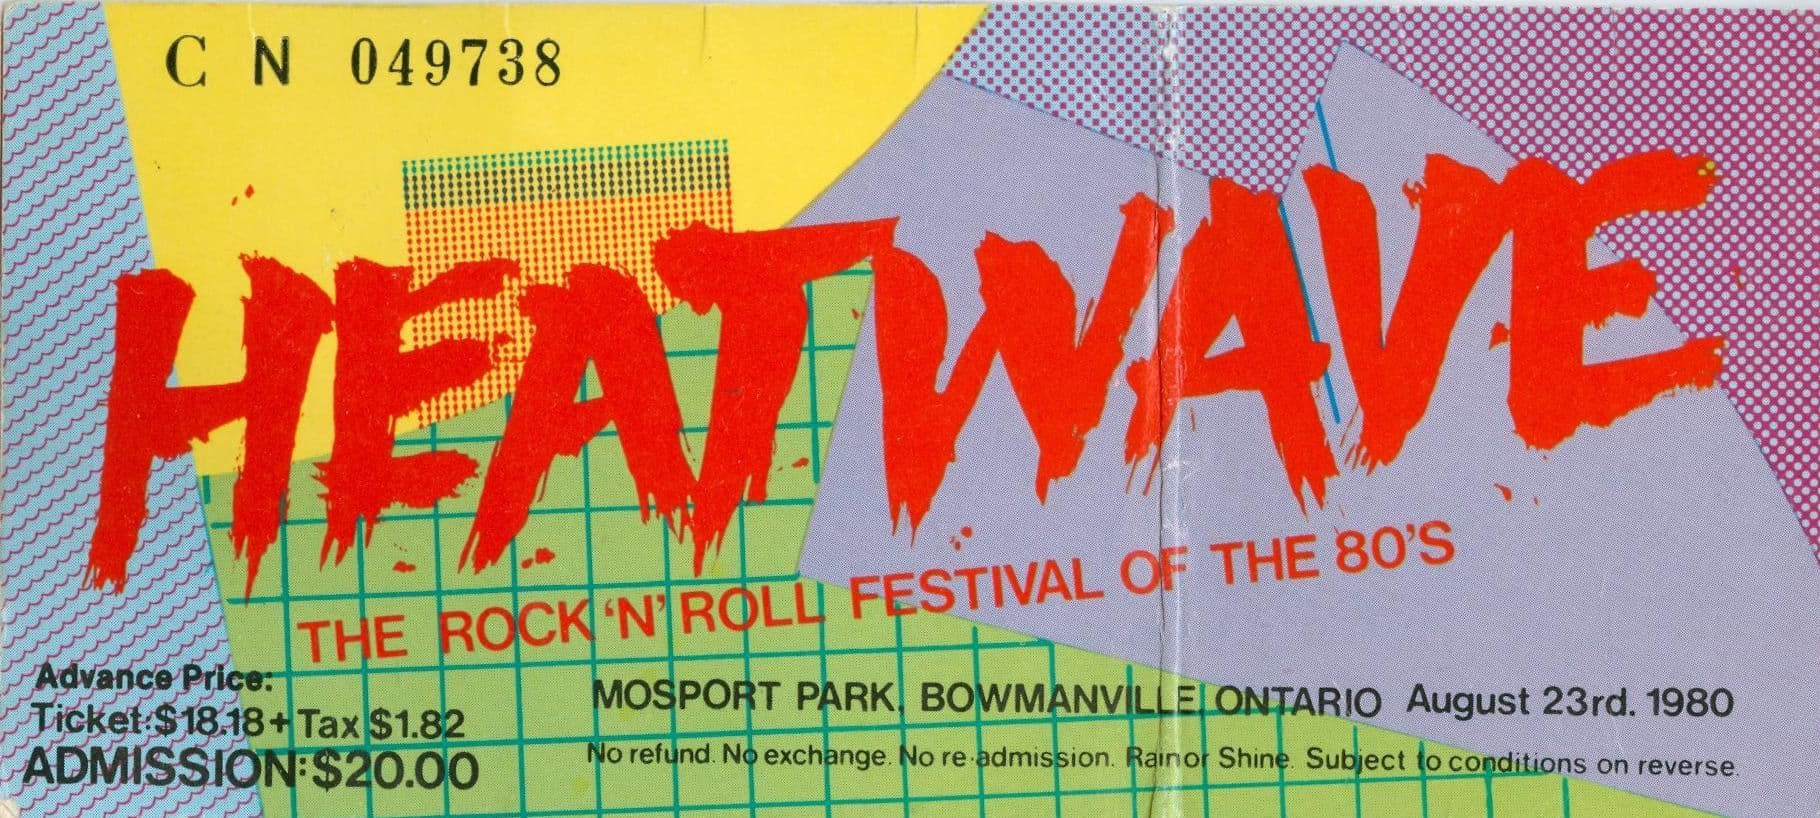 Elvis Costello And The Attractions @ Heatwave Festival 1980 03